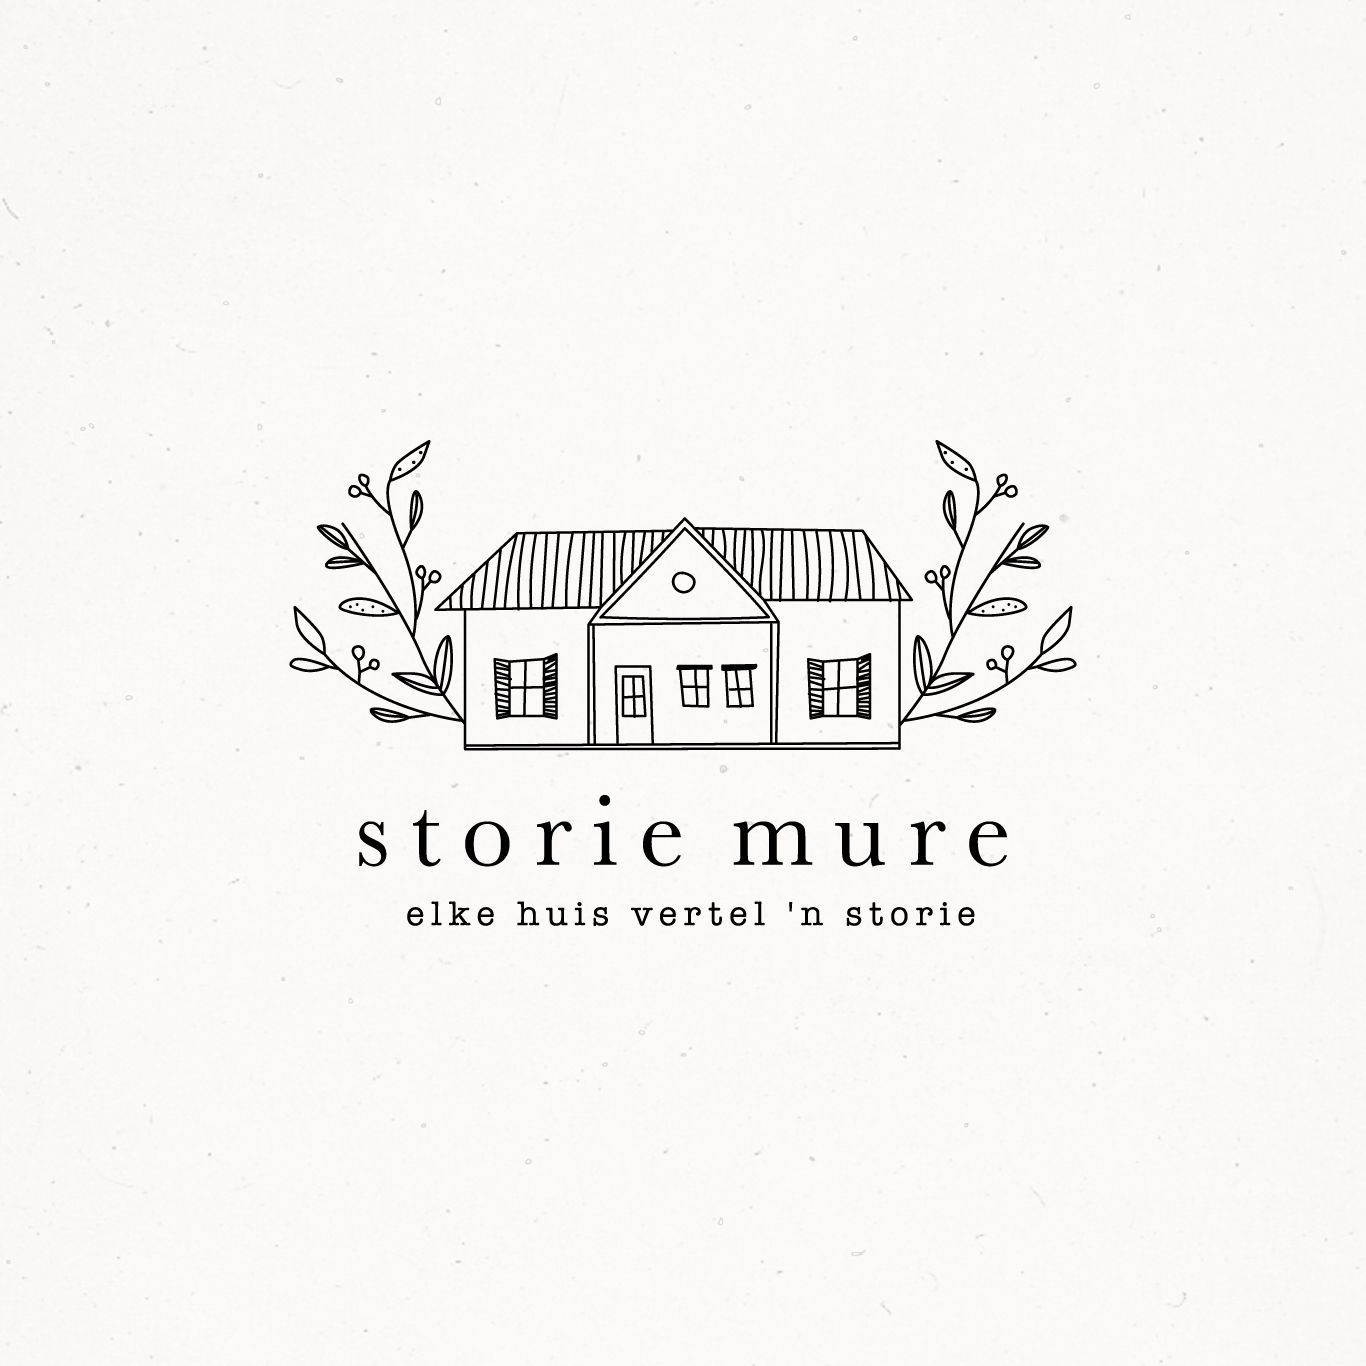 Home House Premade Logo Design Minimal Brand Business Interiors Bed and Breakfast Branding Pre made Handdrawn Homes Botanical Illustration is part of Cute home Logo - addonchangefontforanyofthe ref listingshopheader0 DISCLAIMERS  Do notice that any metalic logos will be pixel based instead of vector based  This is a digital product and no material items will be shipped to you  Colours may vary between screens and printers  It could be that your final printed designs don't look the same as on the screen, usually less vibrant  We always suggest you to do a proof print of your design before doing a full run  ✖✖✖✖✖✖✖✖✖✖✖✖✖✖✖✖✖✖✖✖✖✖✖✖✖✖✖✖✖✖✖✖✖✖ ©IreneFlorentina retains all copyrights to this image  Please to not copy or reproduce without permission